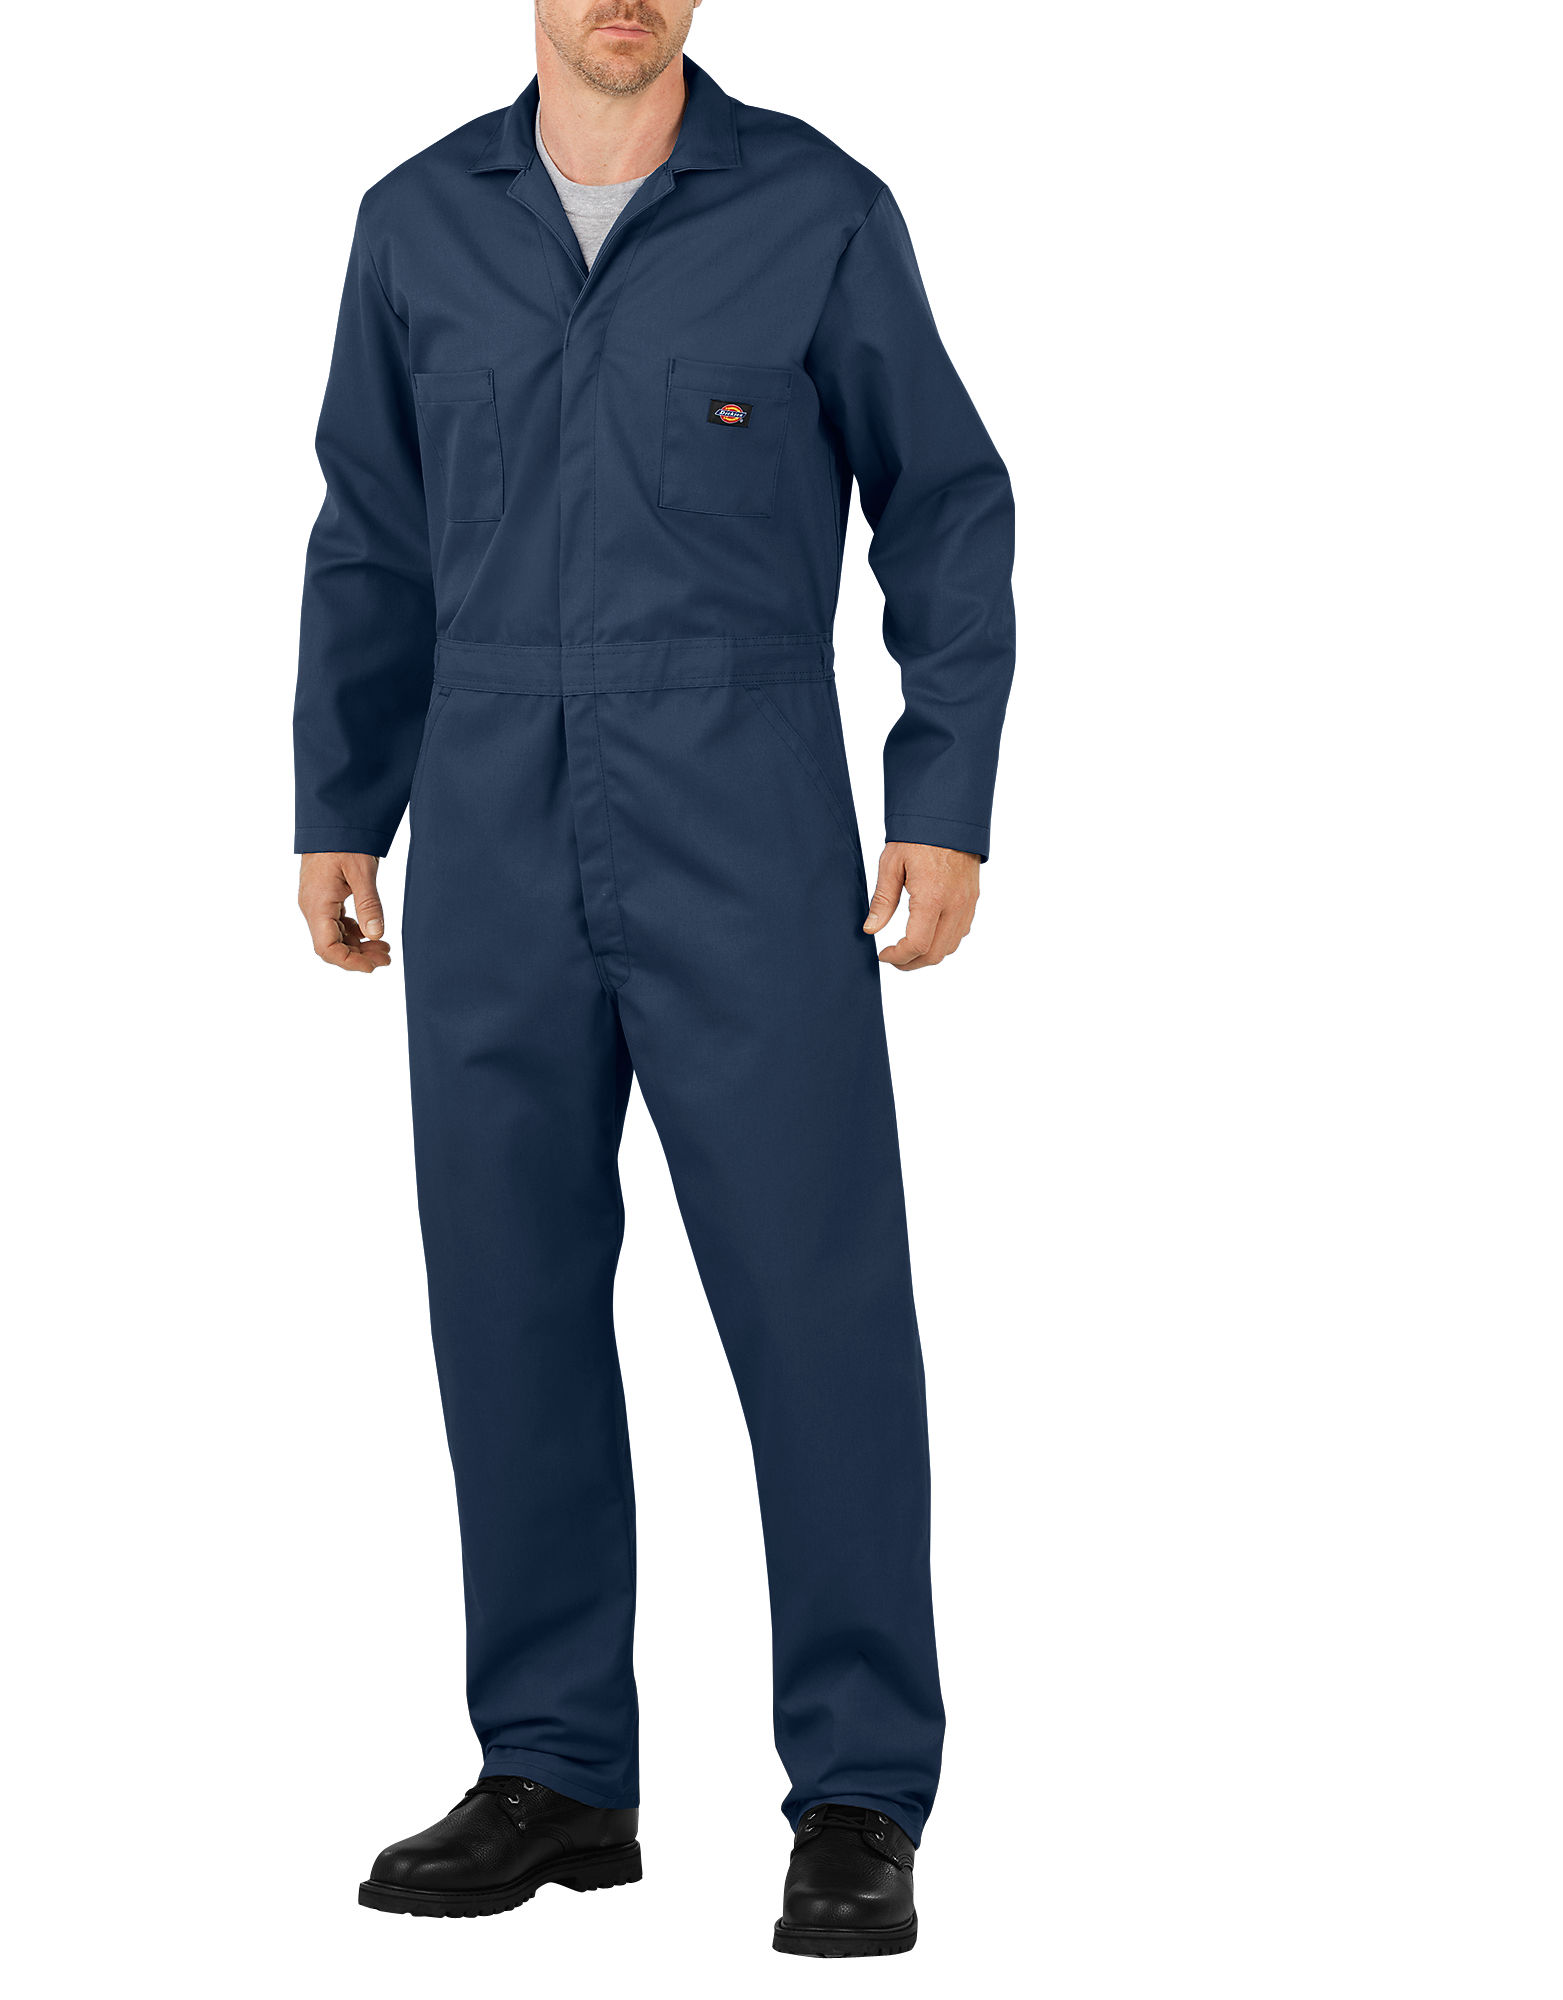 Dickies Mens Basic Blended Coverall, Dark Navy 4X TL by Dickies